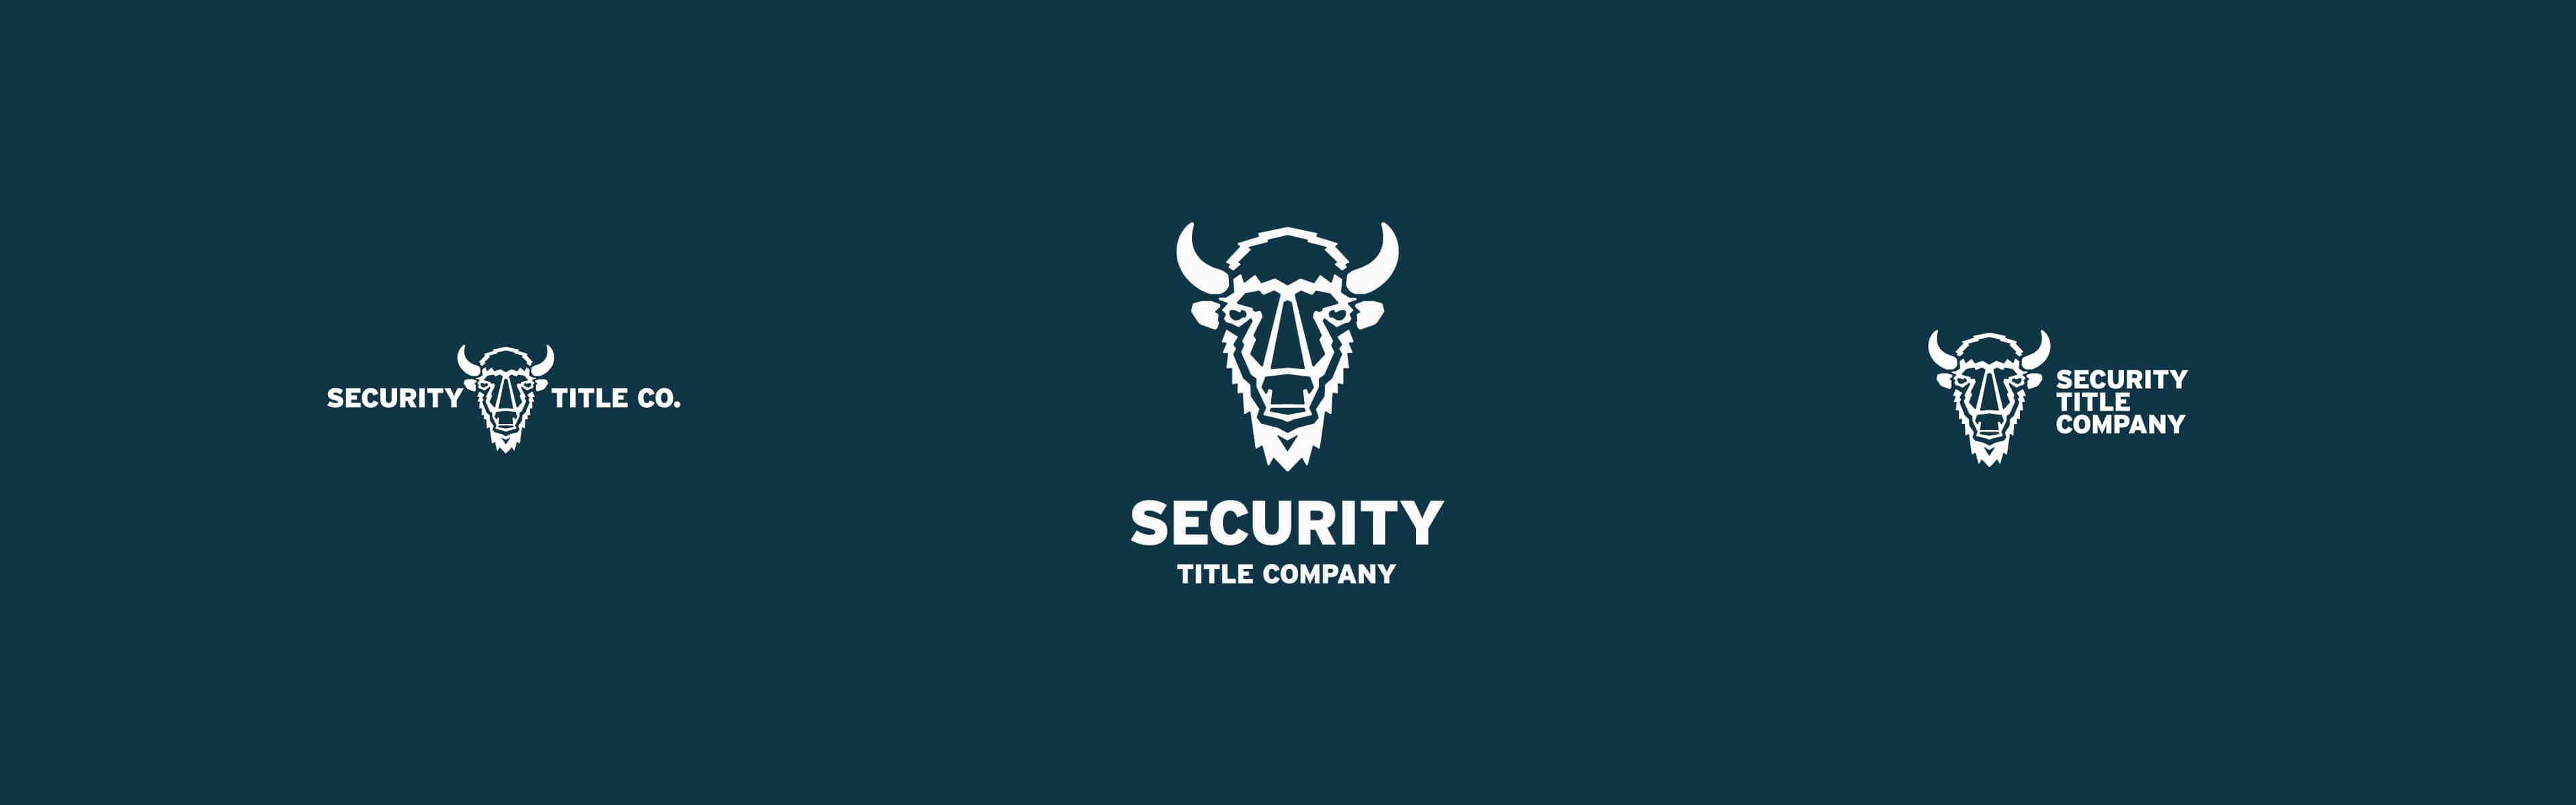 three versions of the Security Title Co logo side-by-side